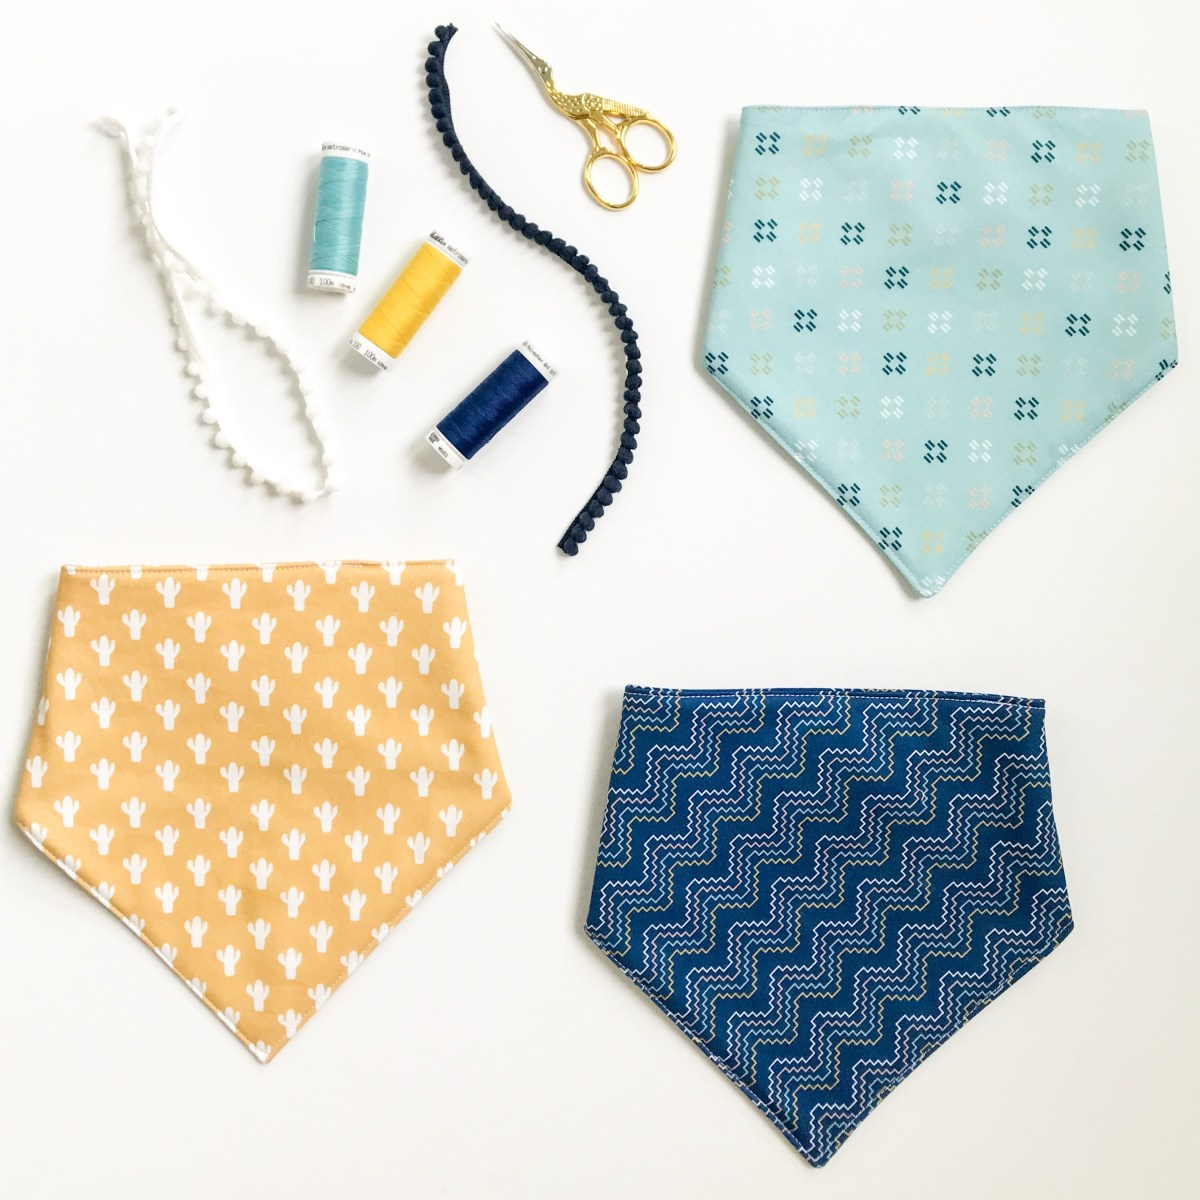 Sewing tutorial: Triangle drool bib for baby